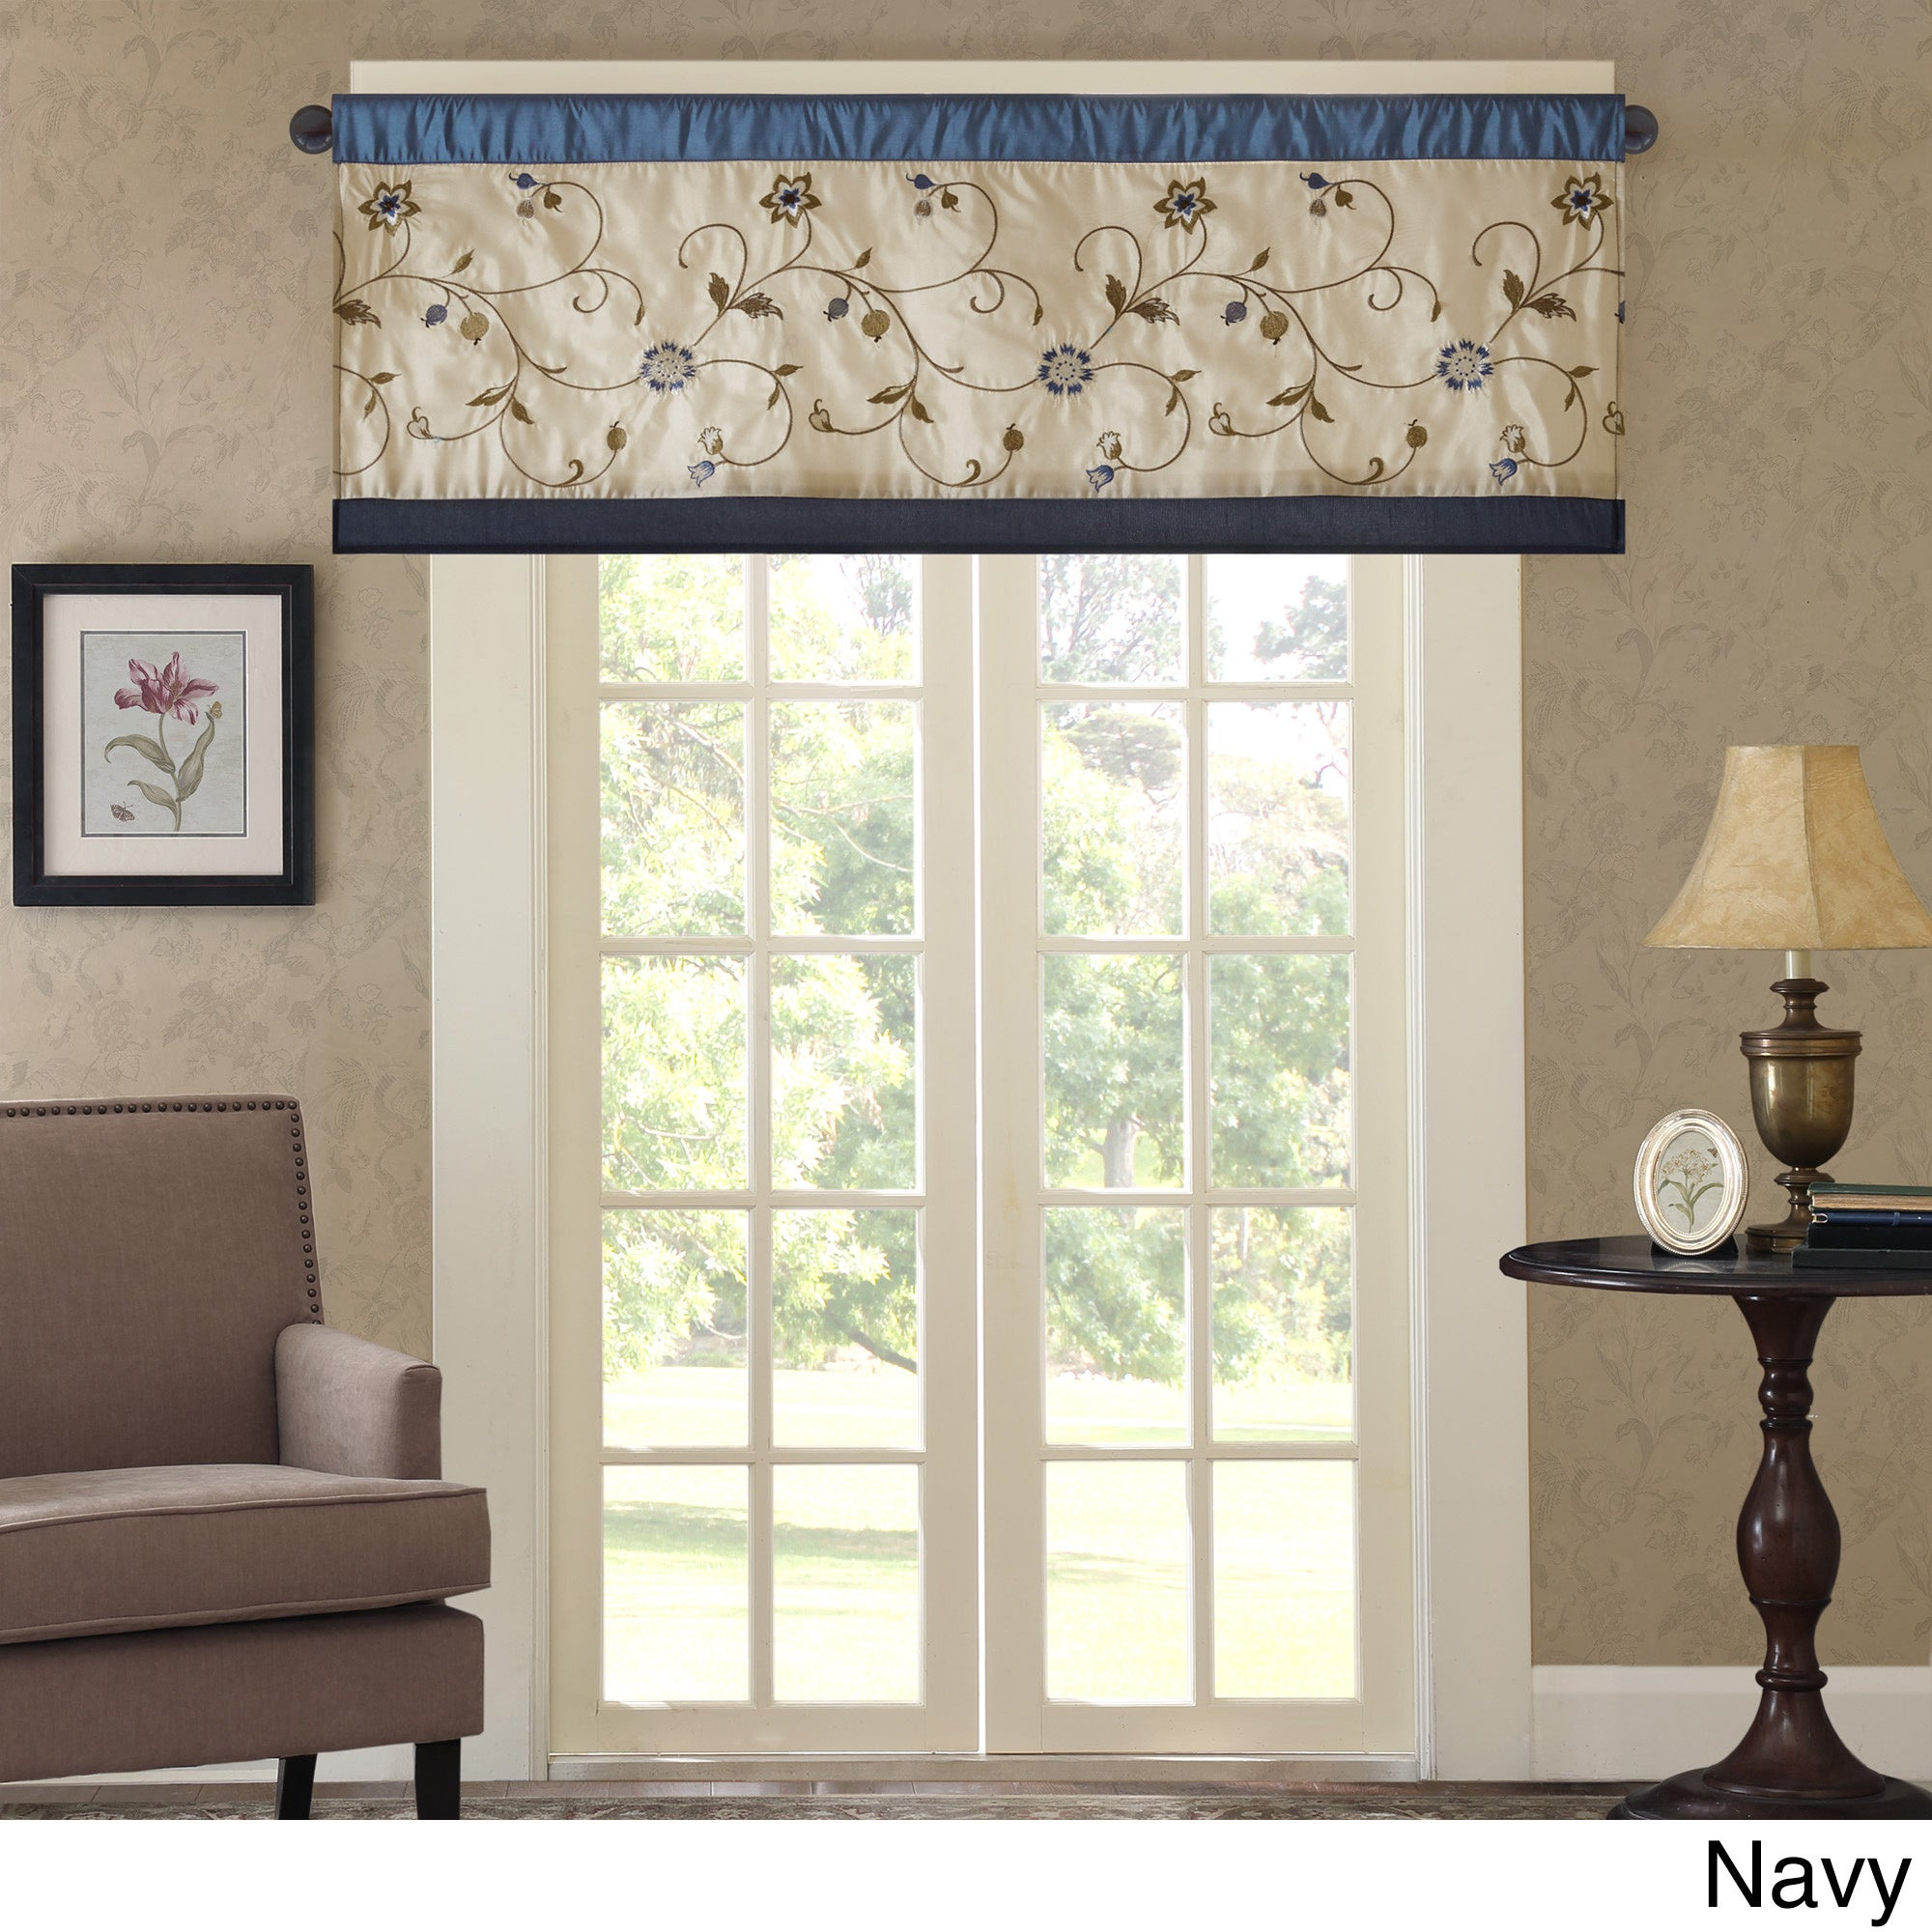 file gallery for ideas window unnamed elegant decor stunning your valance curtain in balloon with windows patterns valances